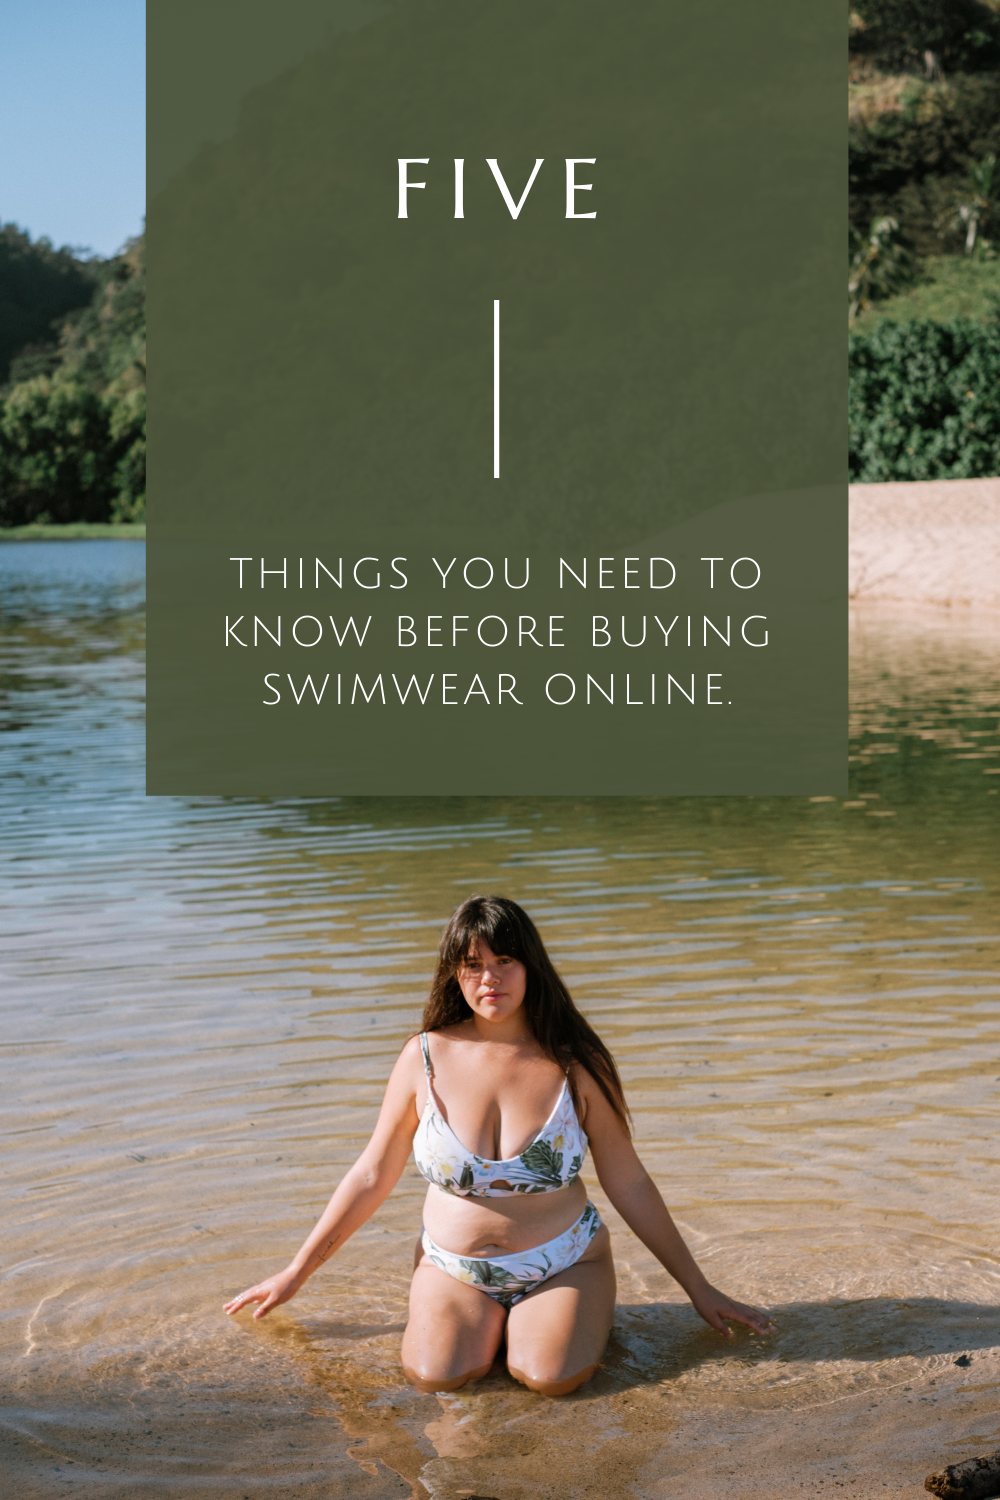 5 Things You Need to Know Before Buying Swimwear Online.